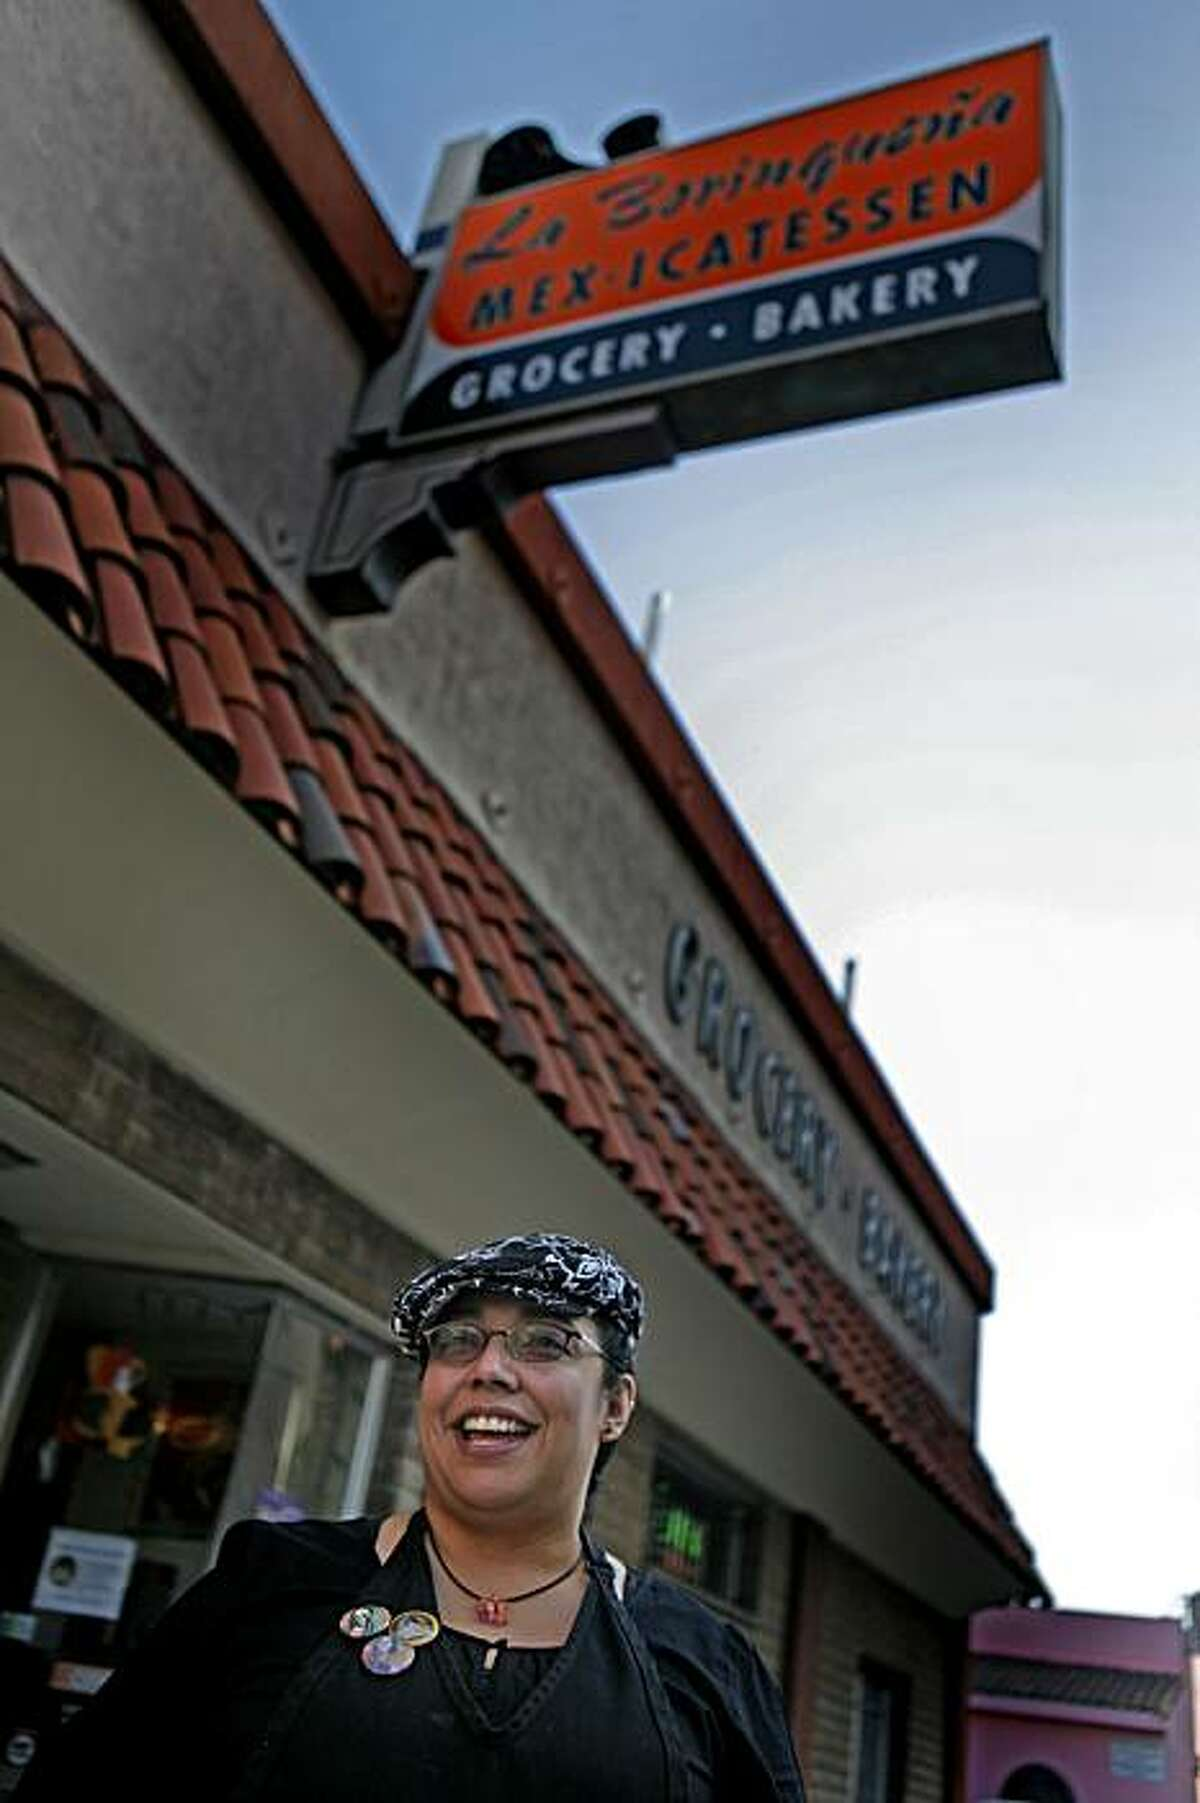 Tina 'Tamale' Ramos, spokesperson and manager for special orders at the La Borinquena Mex-icatessen in Oakland Calif. on Saturday October 31, 2009.